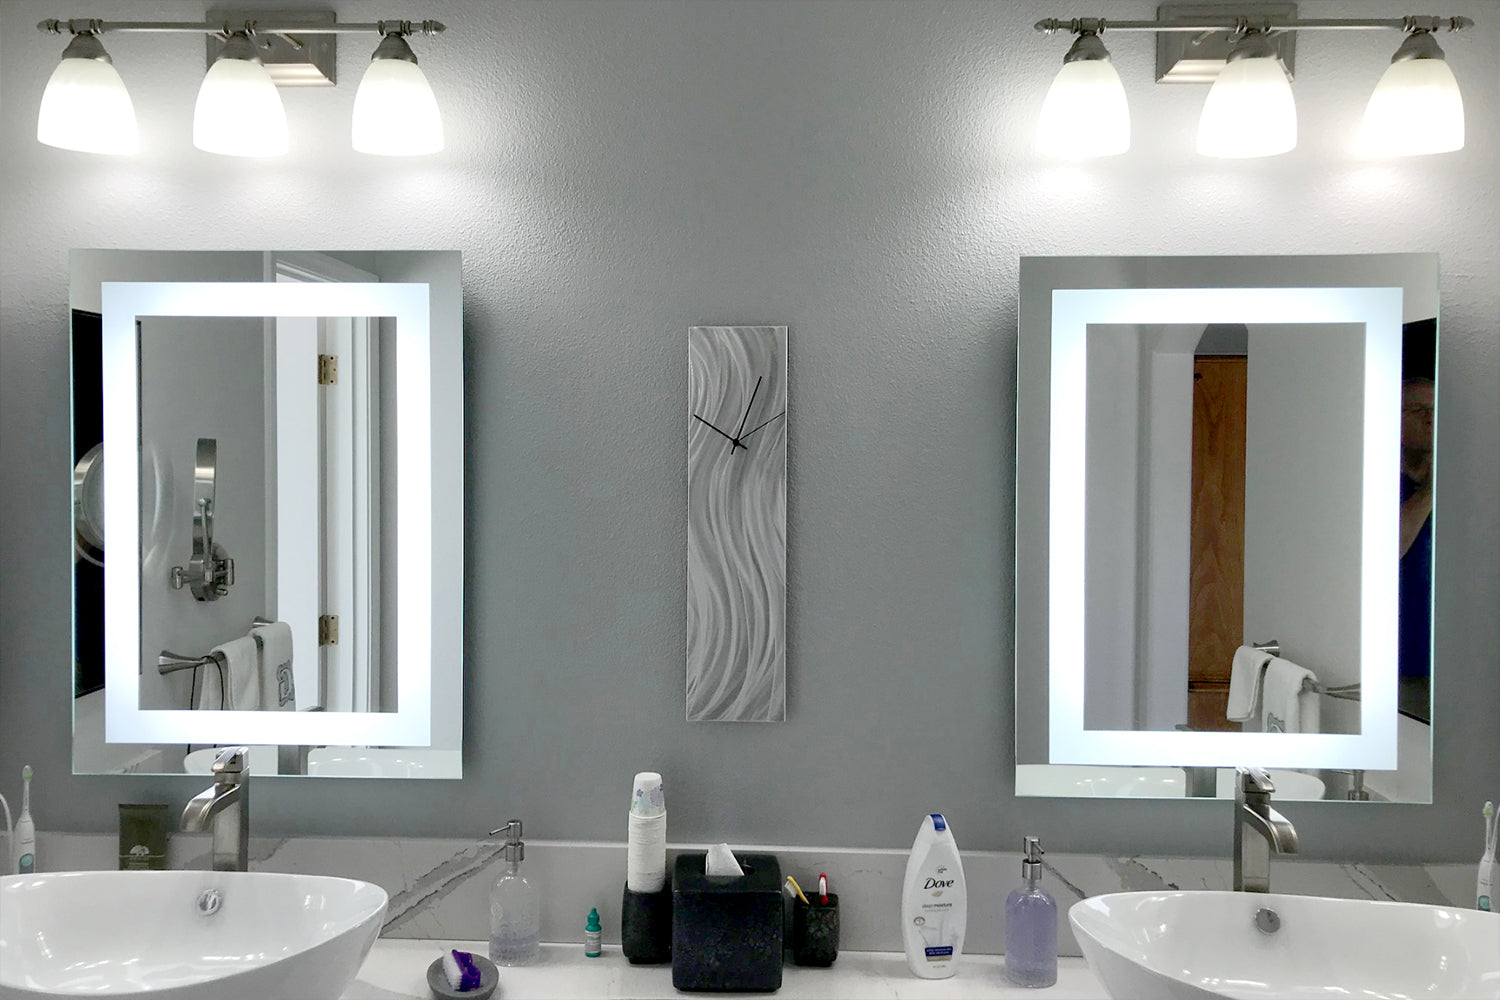 Front Lighted Led Bathroom Vanity Mirror 36 X 40 Rectangular Mirrors Marble